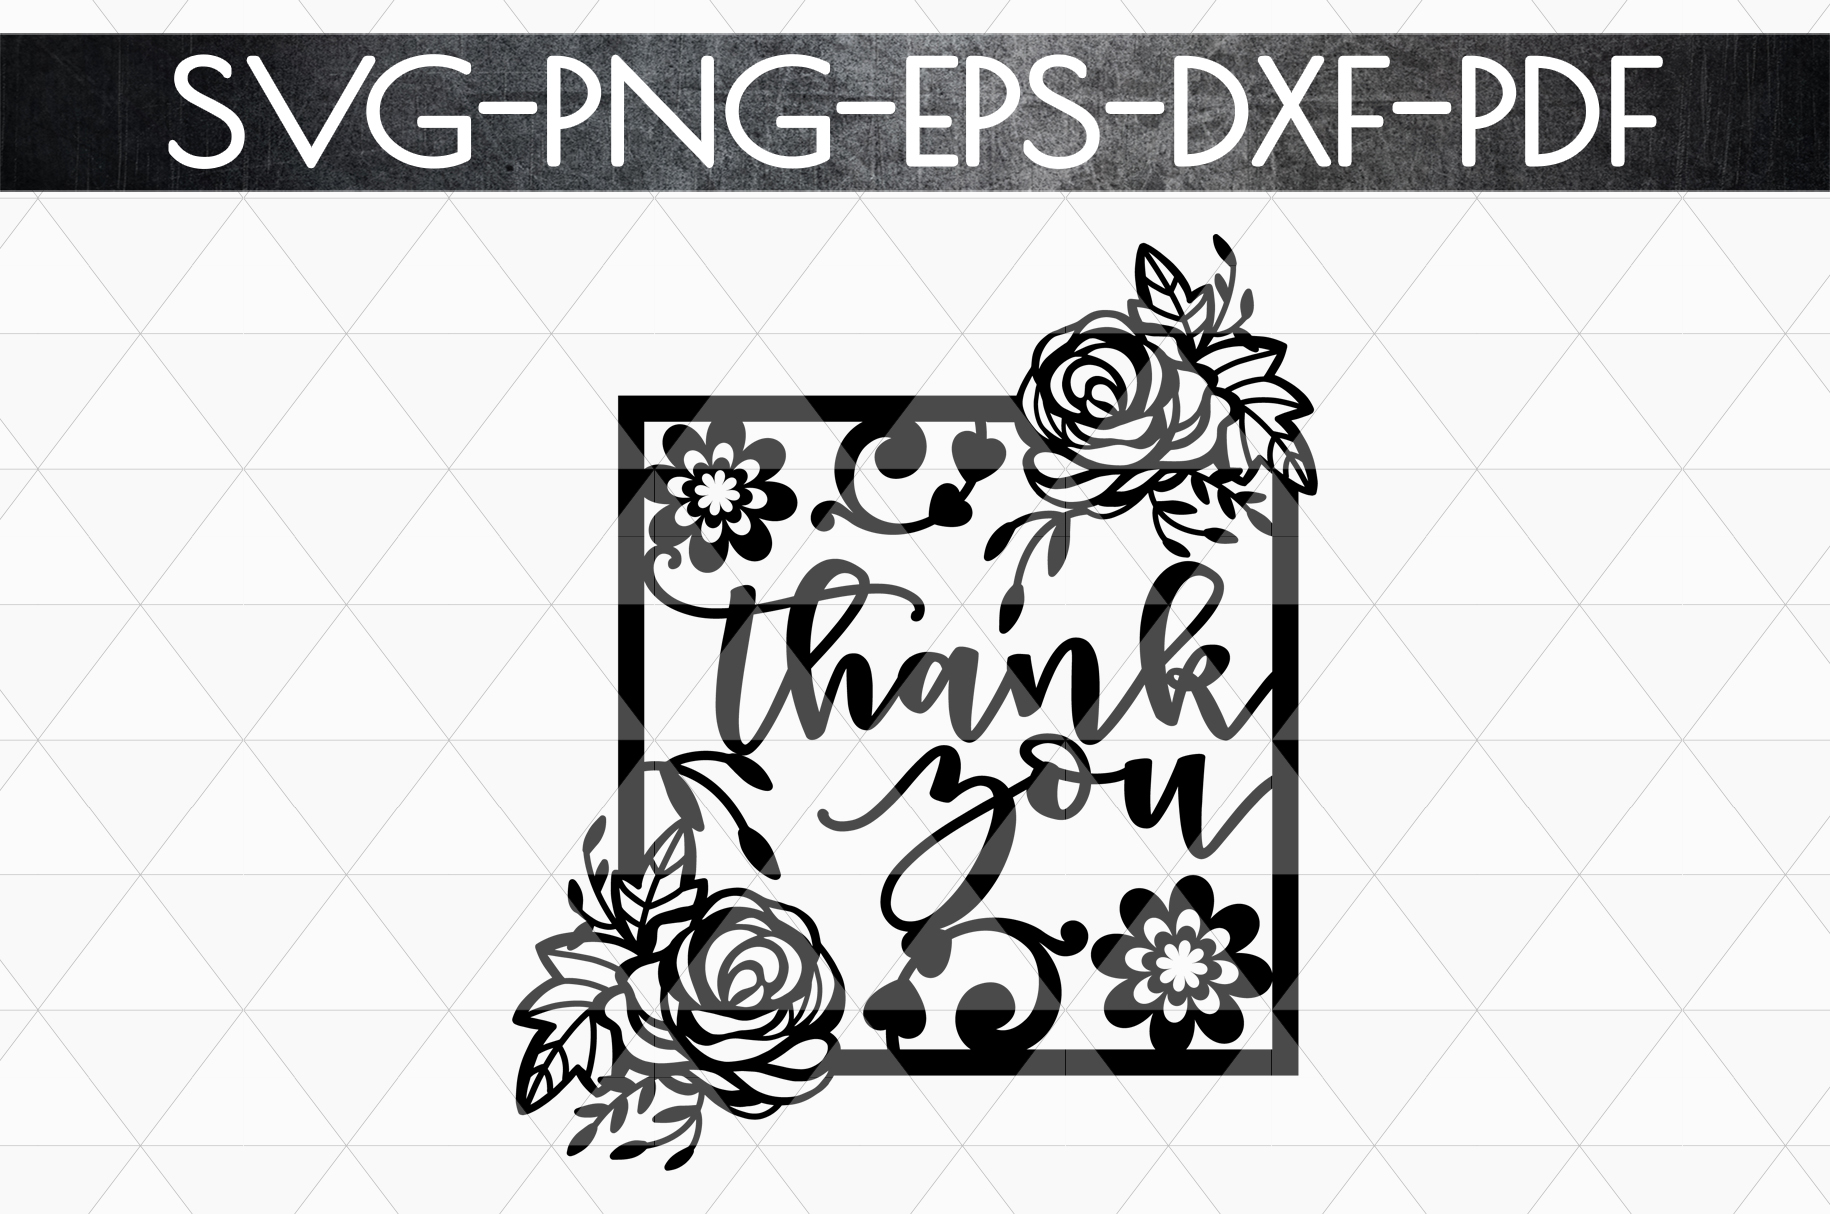 Thank You 5 Papercut Template, Appreciation Frame SVG, PDF example image 4